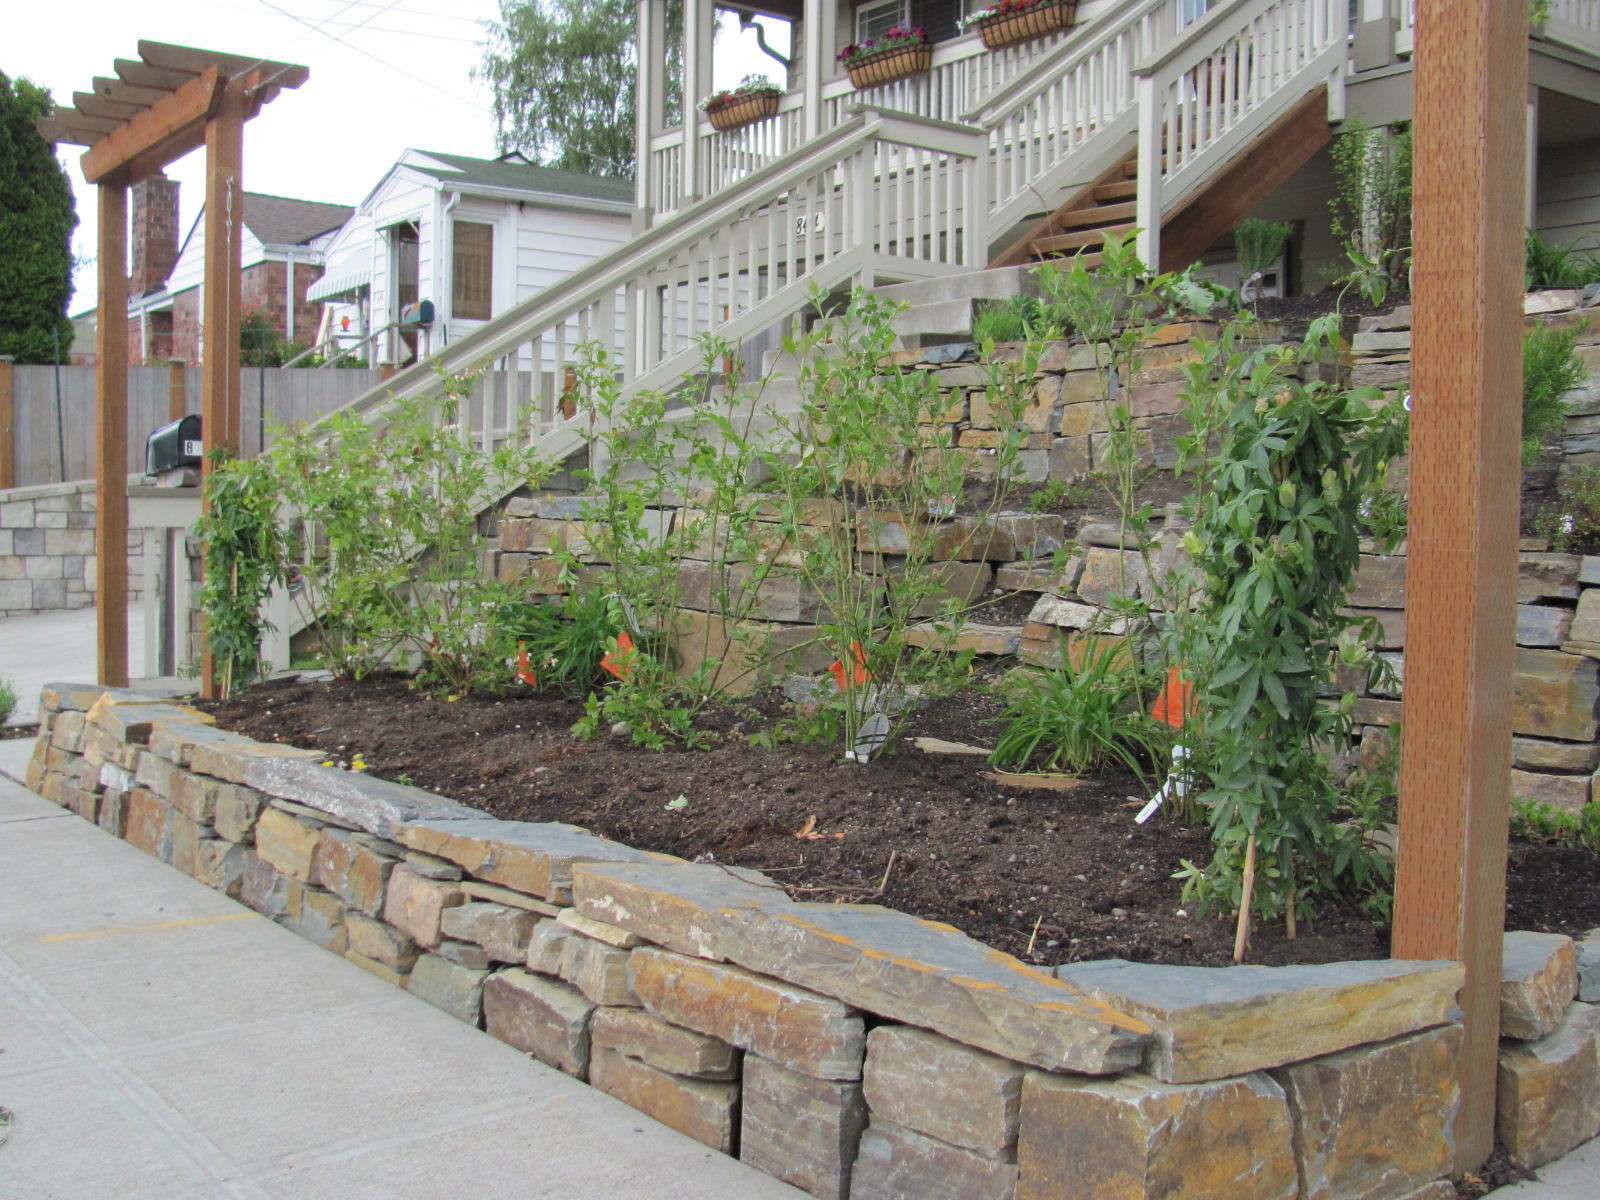 Edible landscaping cascadia edible landscapes for Raised flower bed ideas front of house